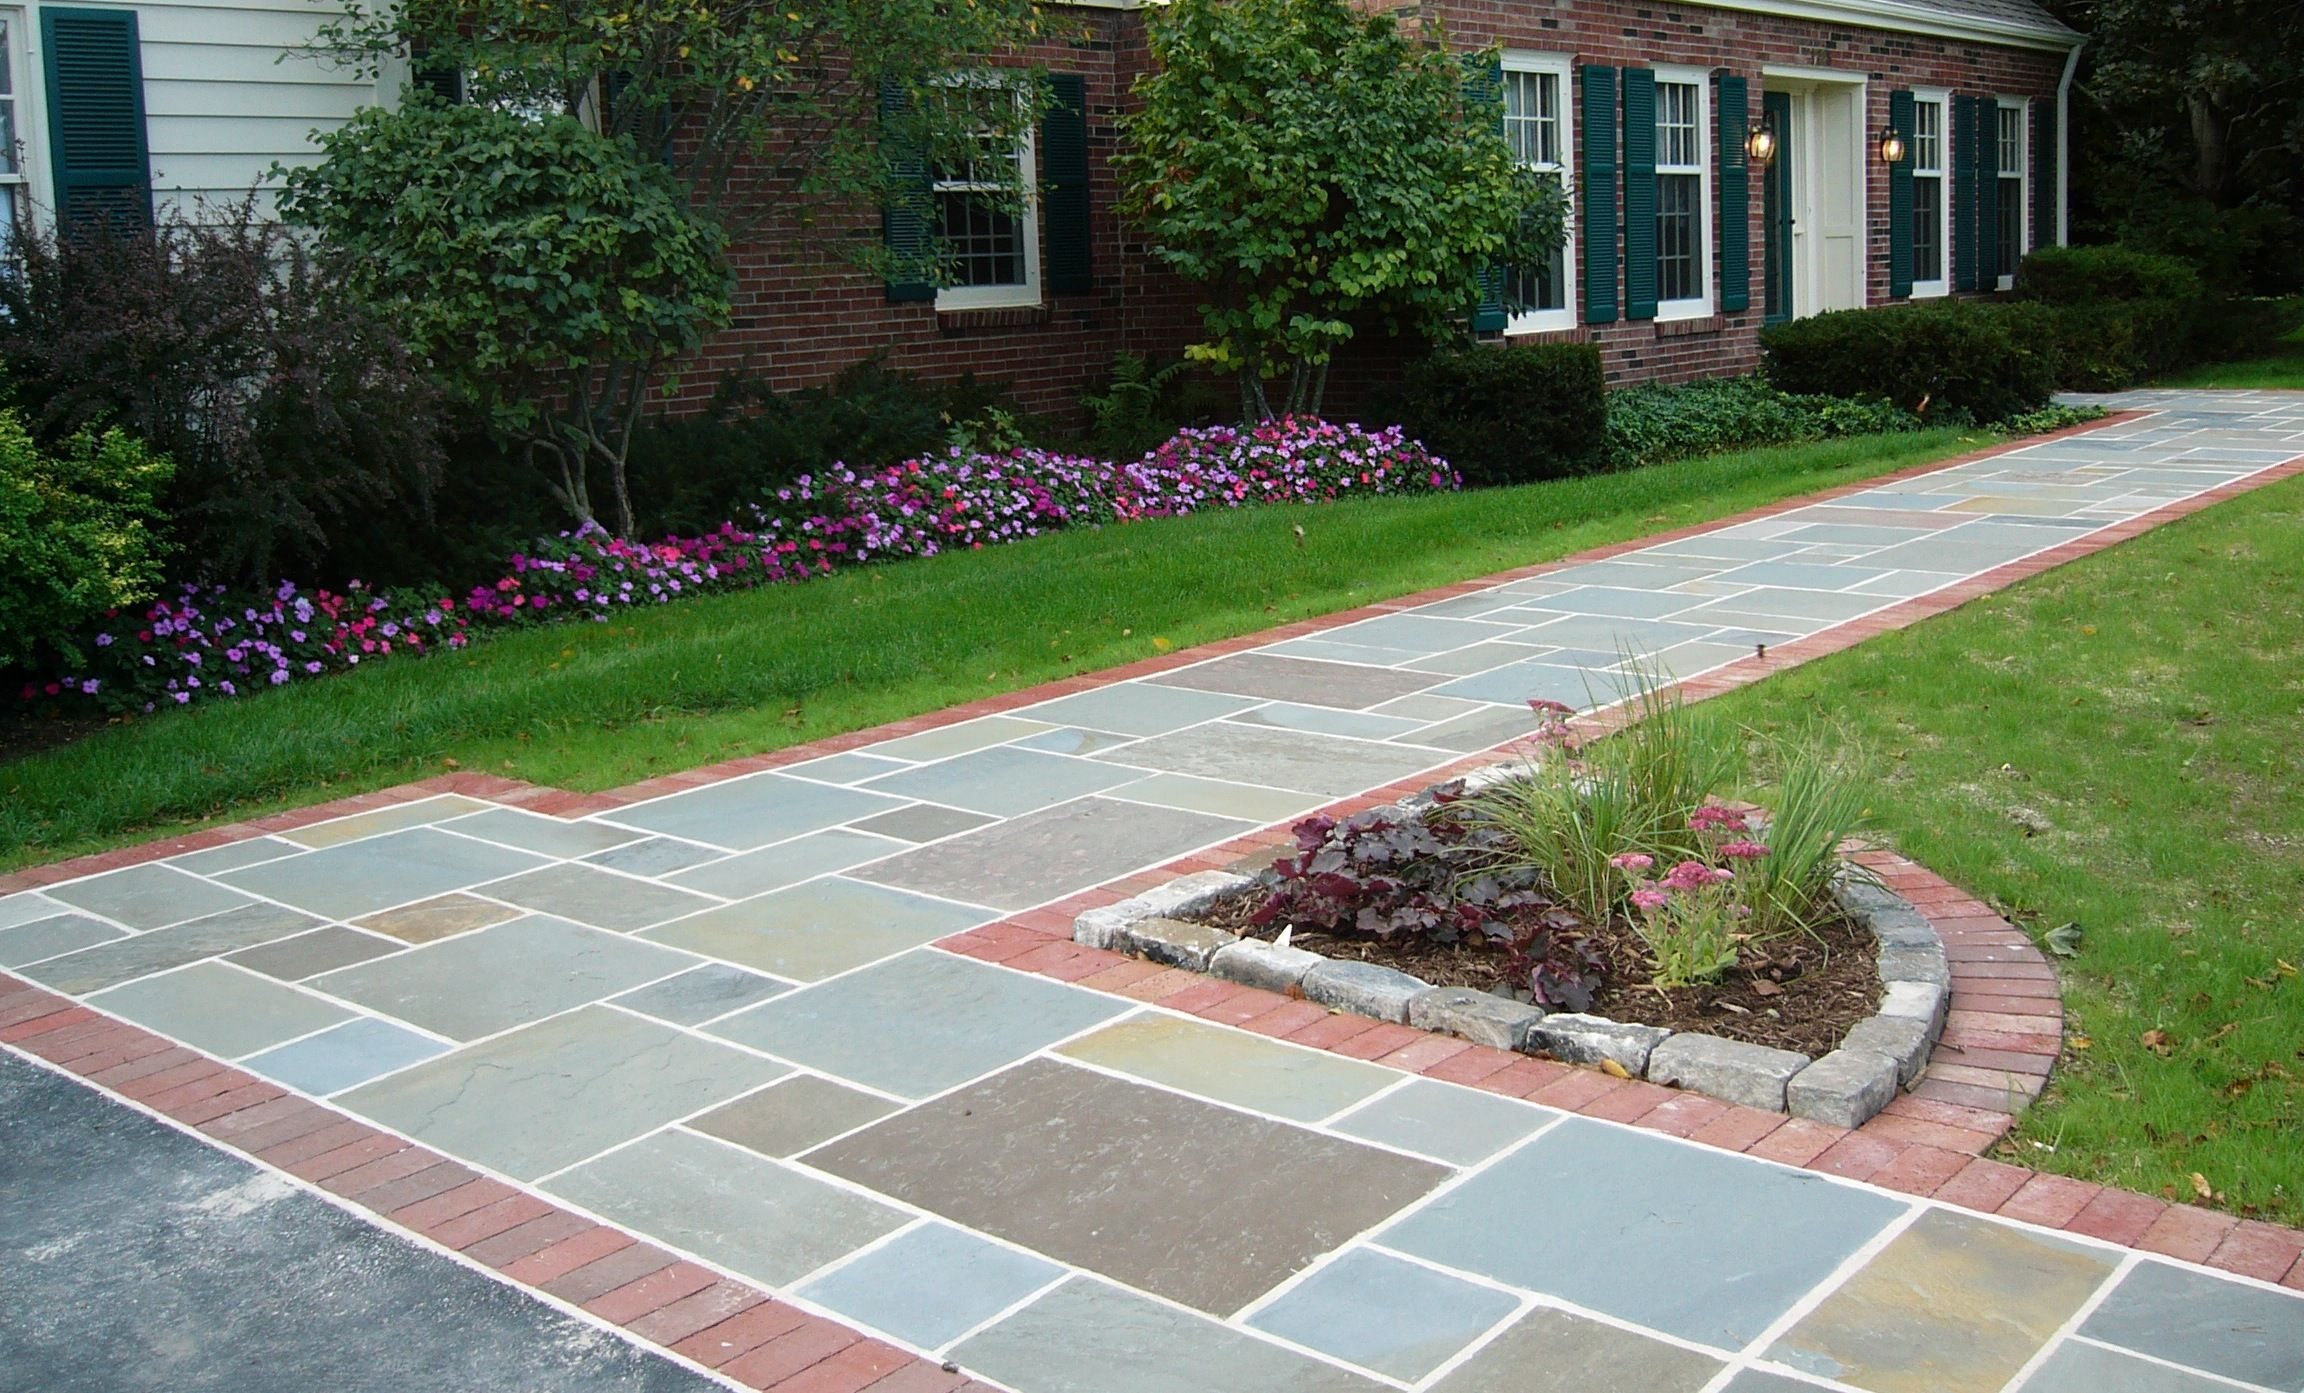 Bluestone Full Range Entryway With Belden Brick Edging